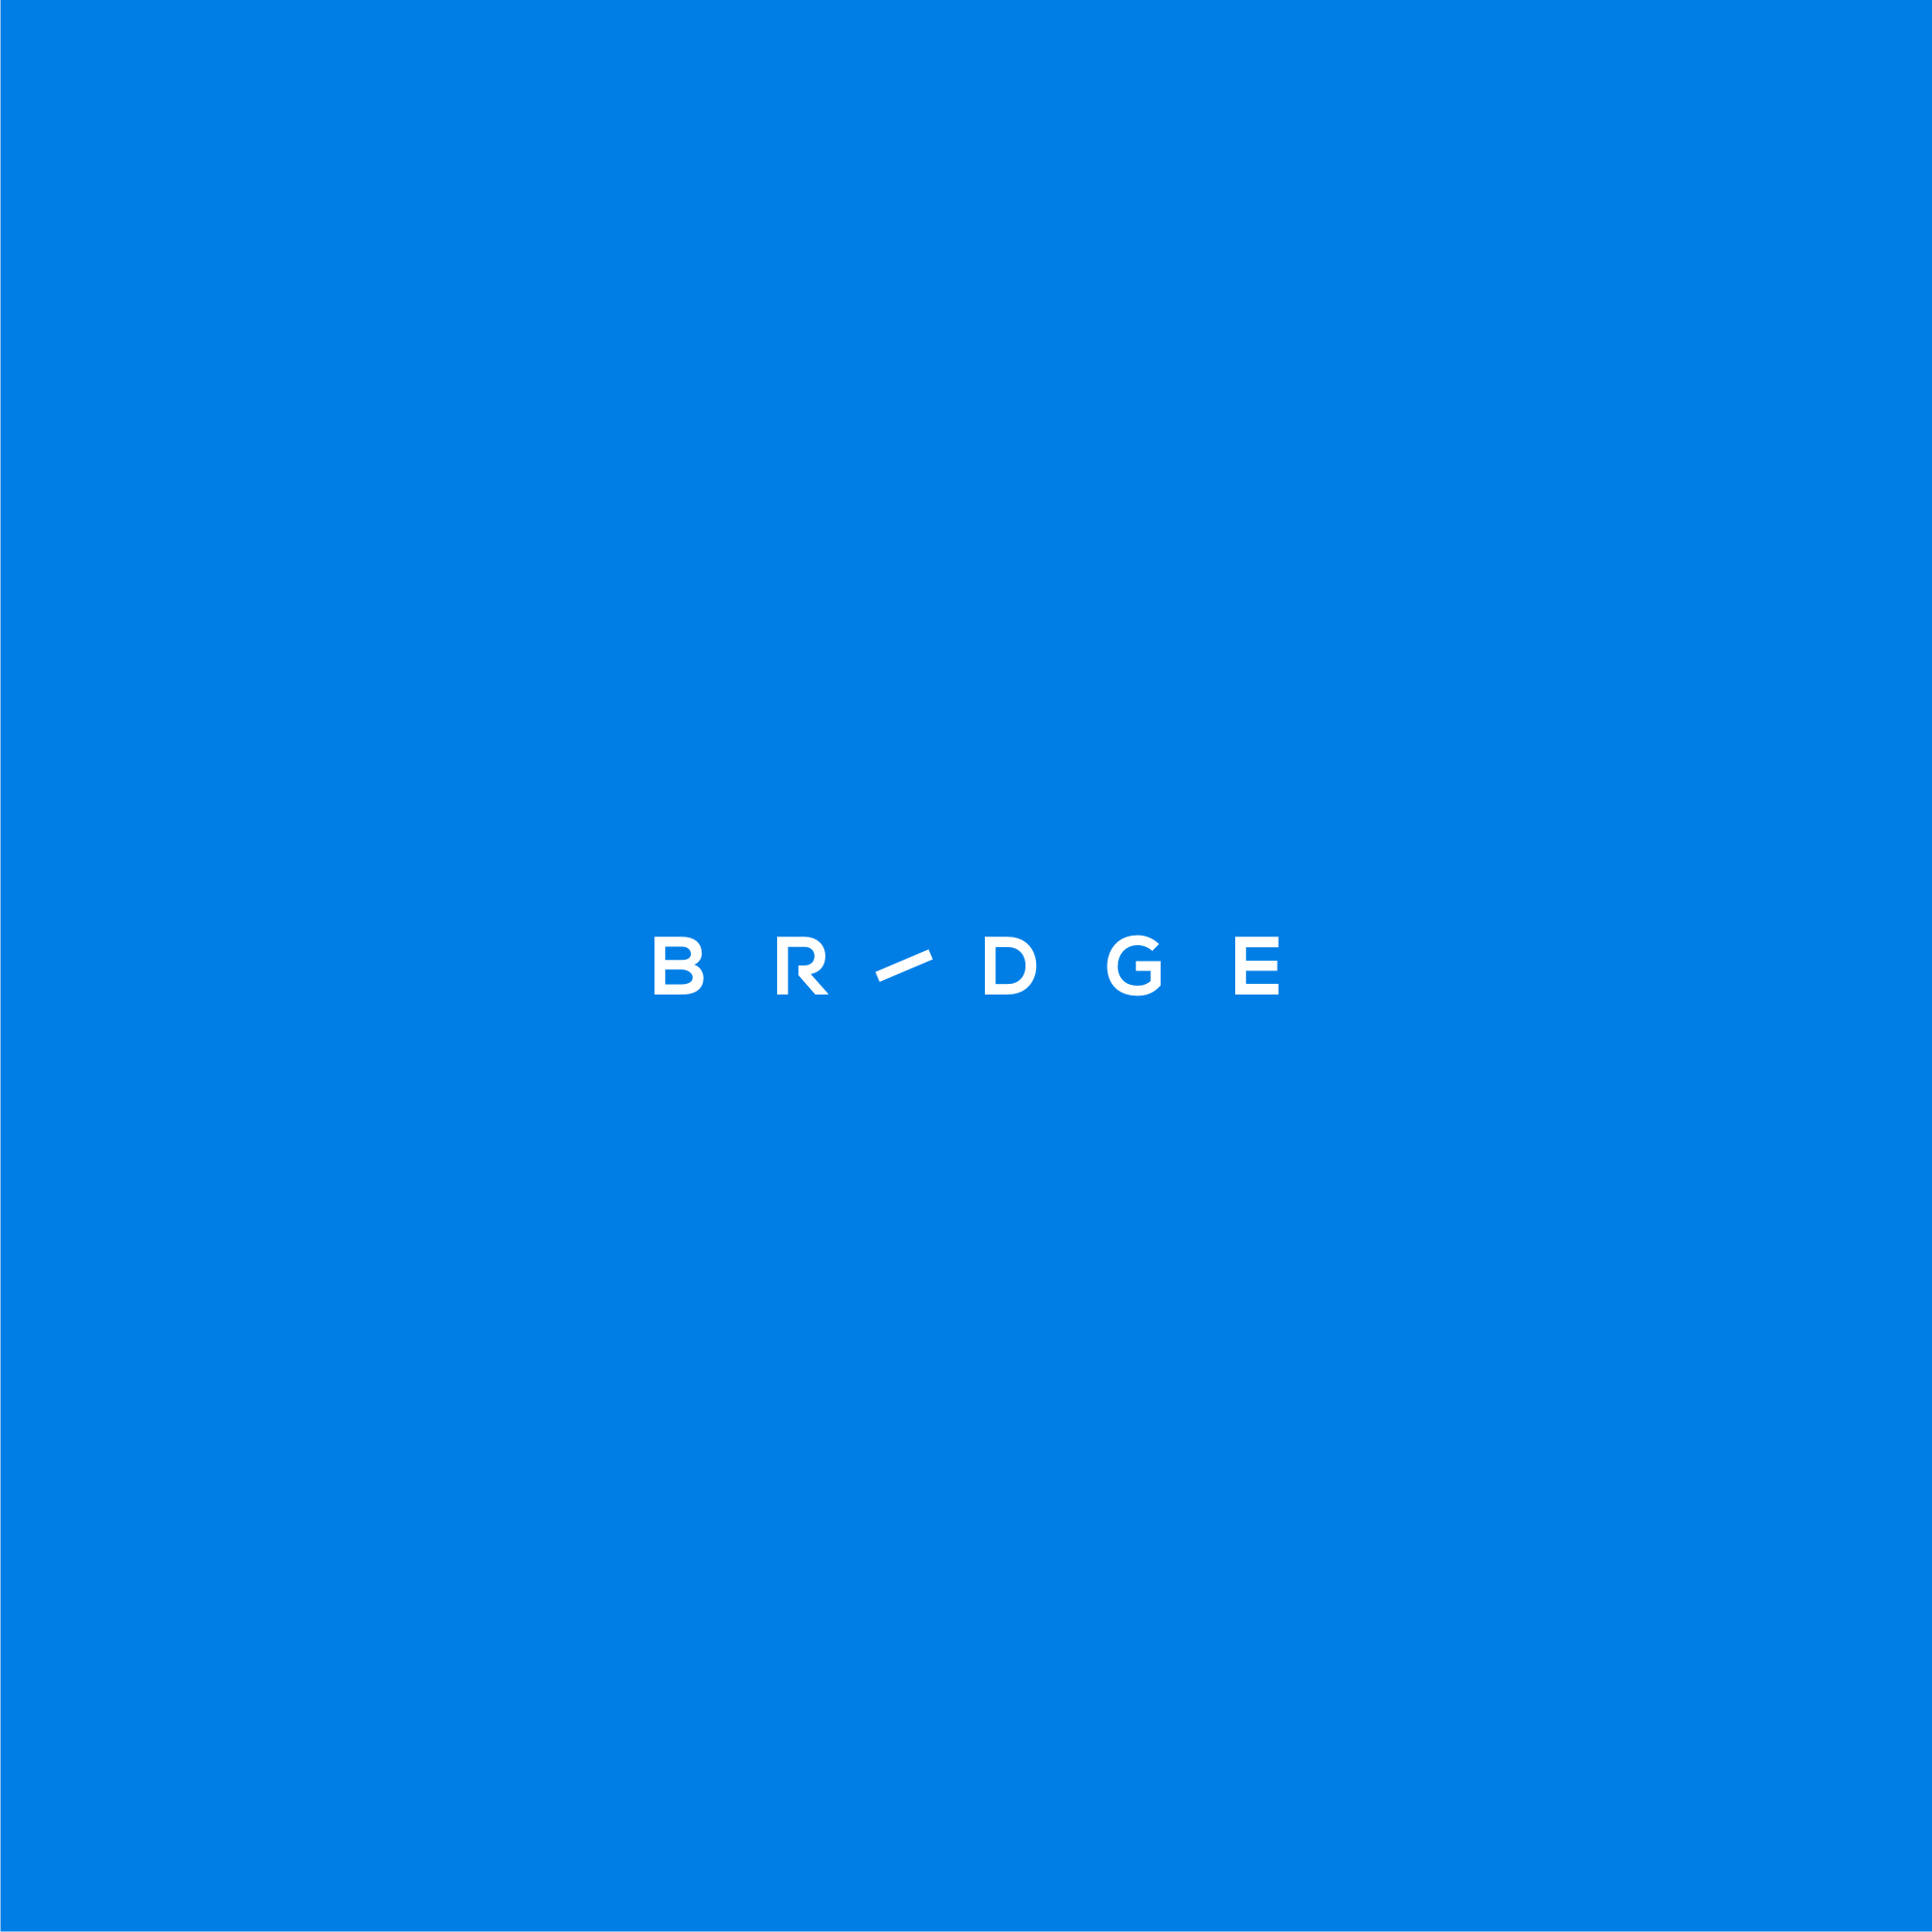 Bridge: Simple, Distinct, Flat, Logo For Cloud Storage Collaboration Startup